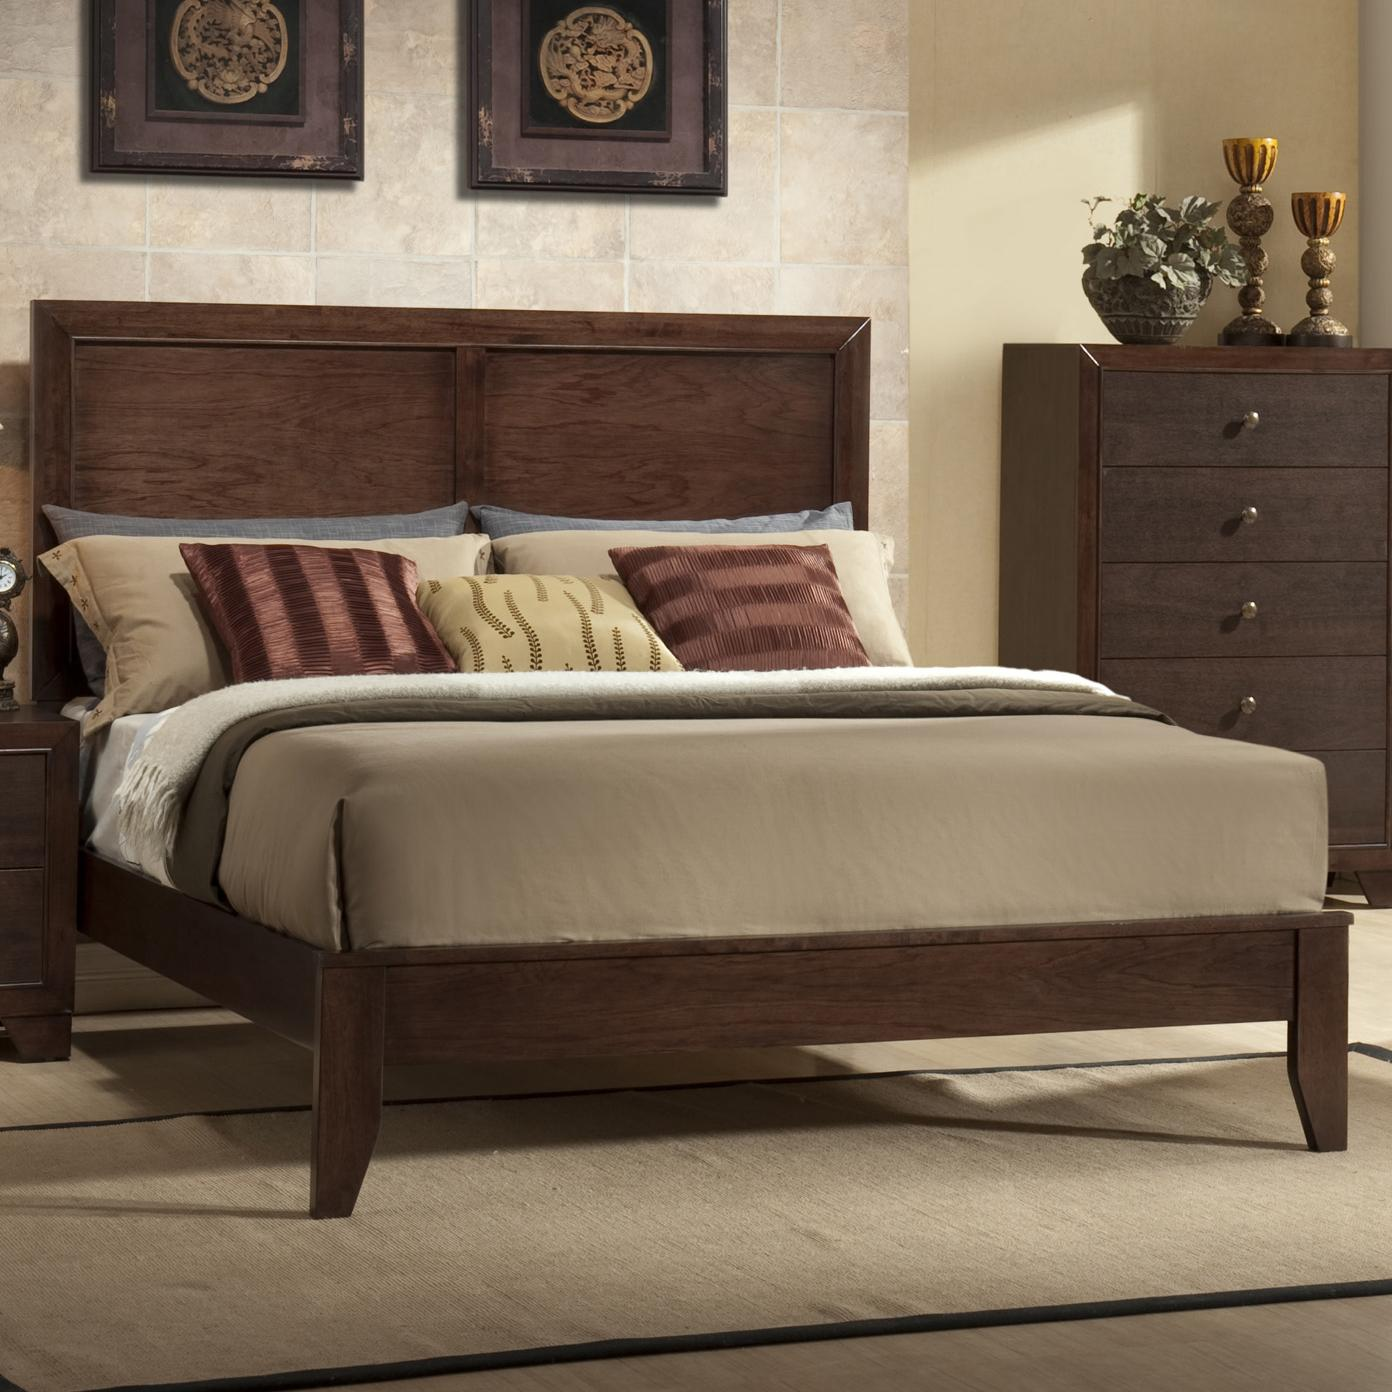 Crown Mark Silvia Queen Low Profile Bed - Item Number: B4600-Q-HBFB+RAIL